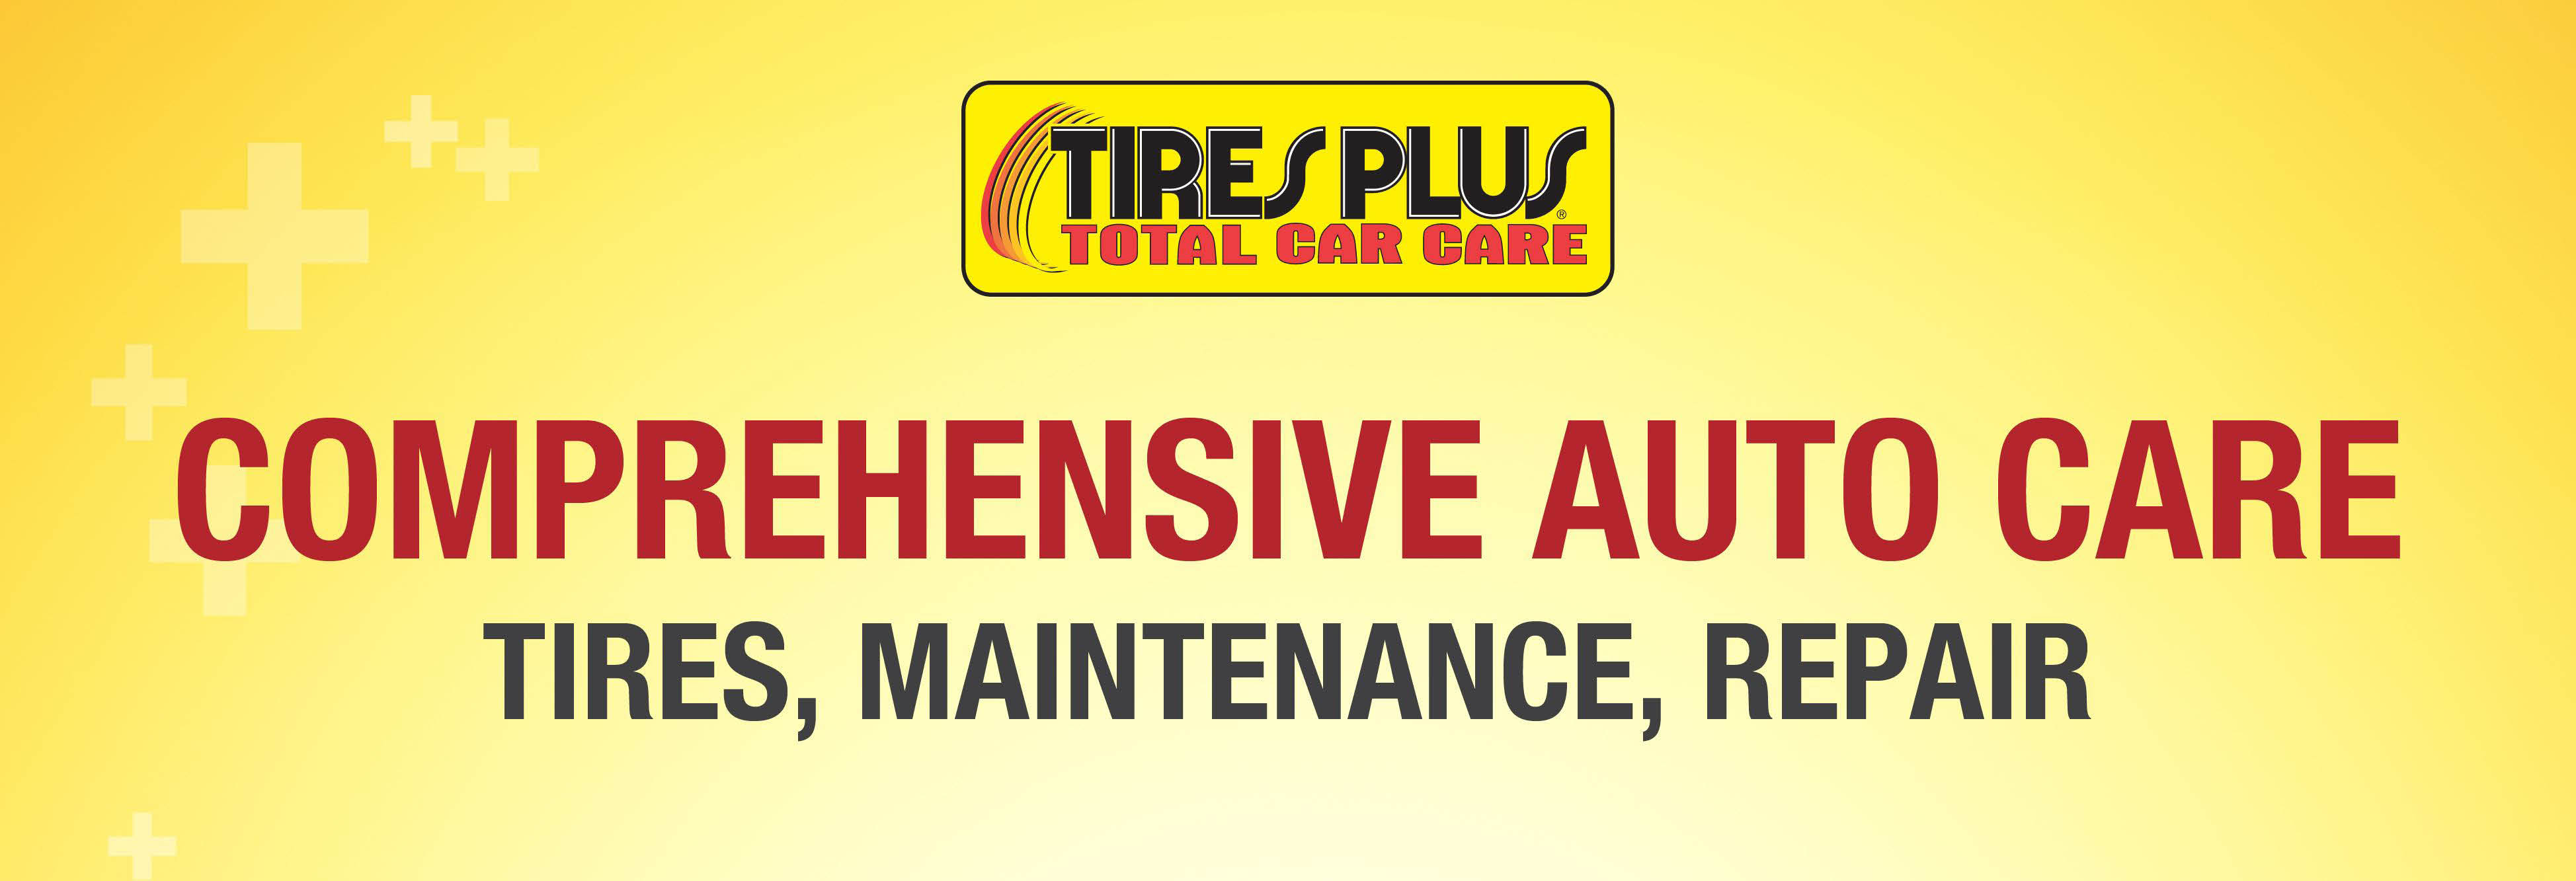 Tires Plus near me Athens GA Florida Tires Plus Oil change coupon Hudson, FL